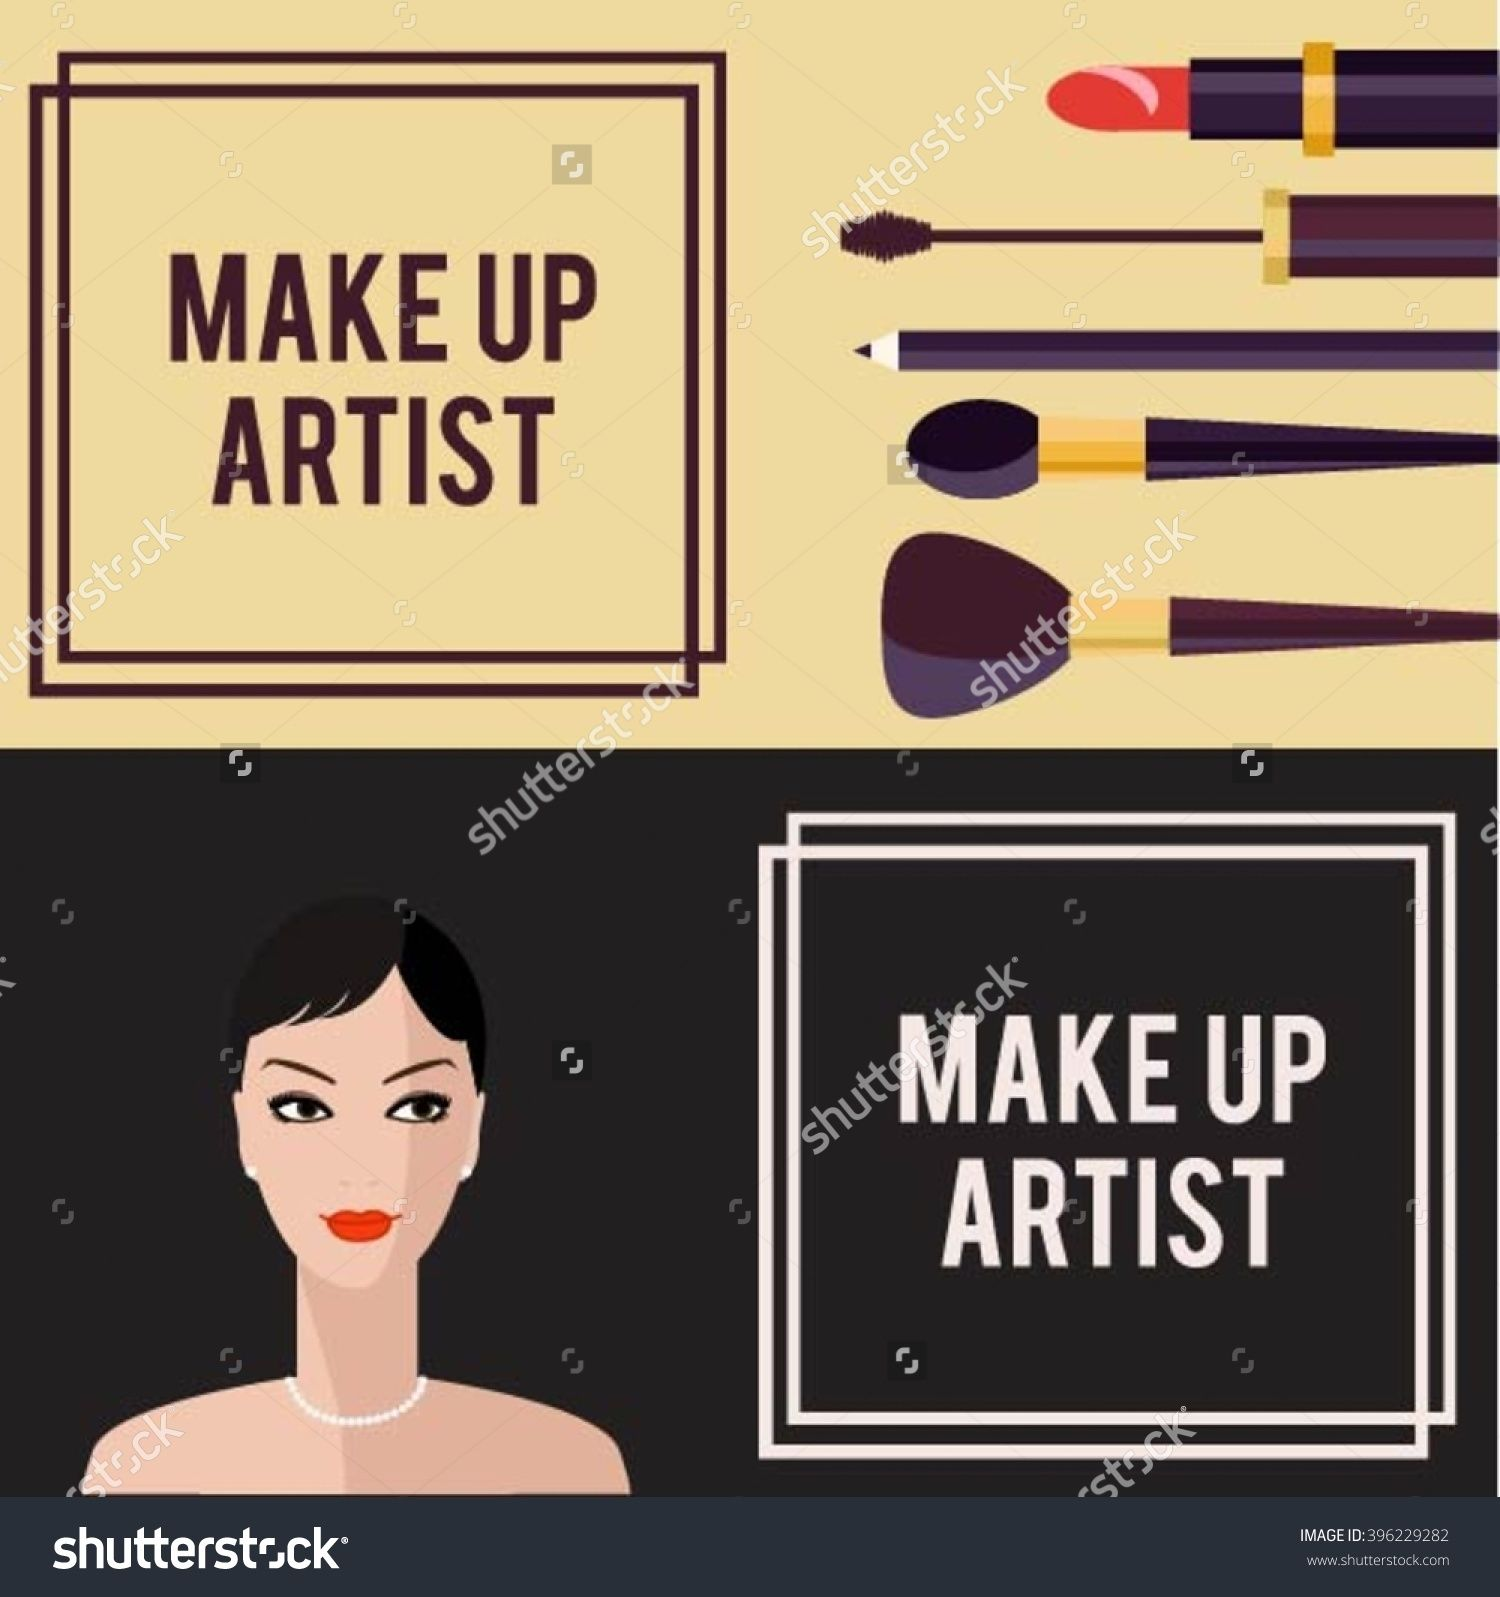 Image Result For Makeup Artist Advertising Poster Maybe Use The Top